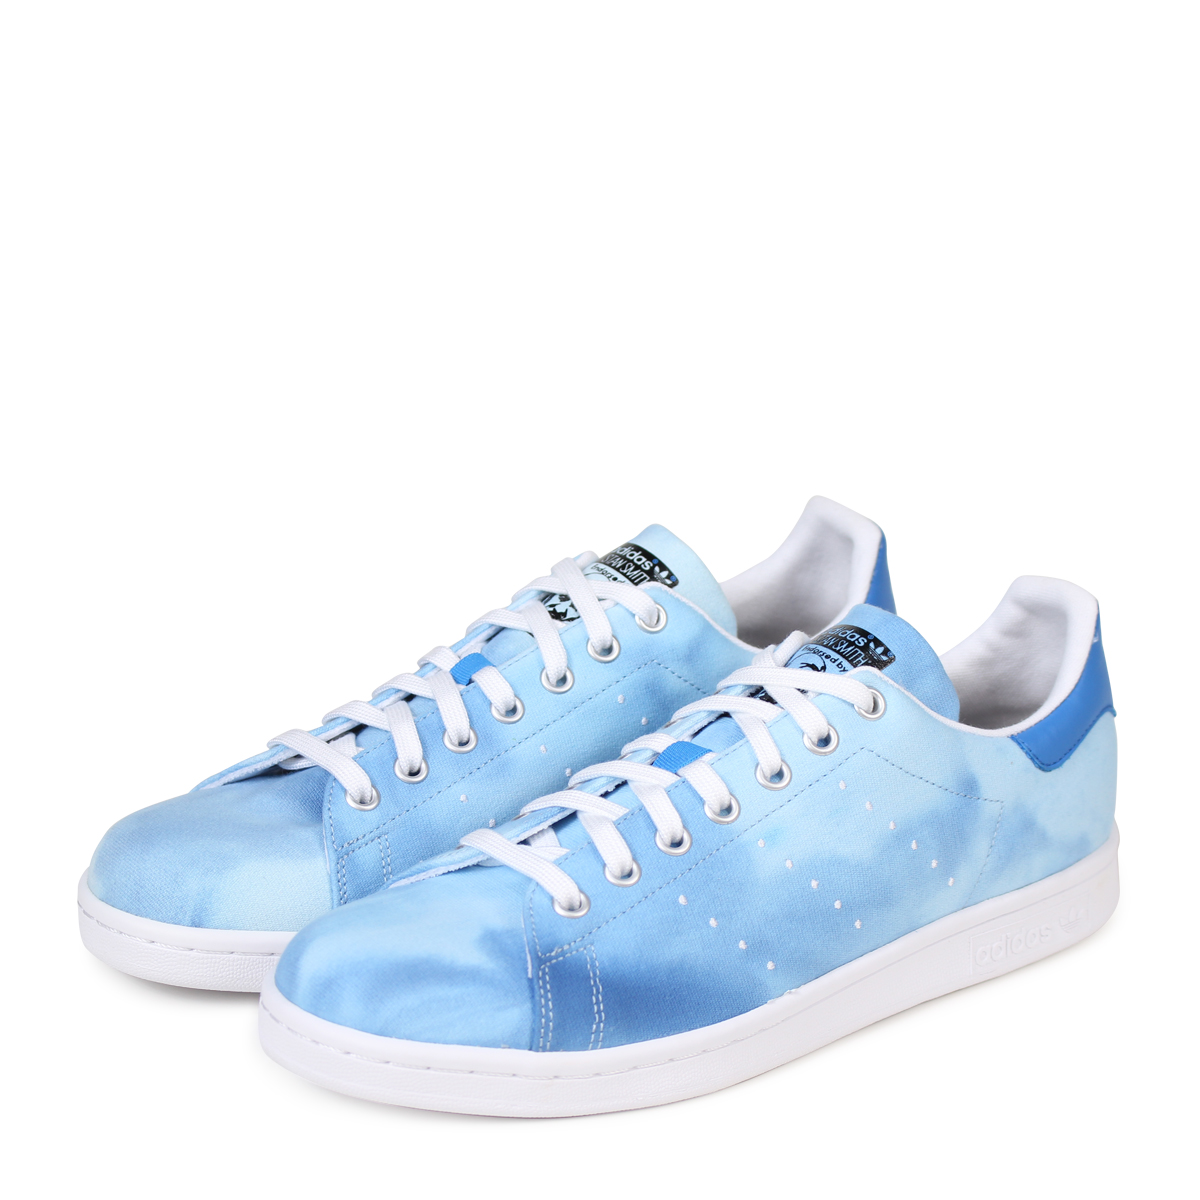 separation shoes 327da 8f870 ALLSPORTS  adidas Originals PW HU HOLI STAN SMITH Adidas Stan Smith  sneakers Farrell Williams men collaboration AC7045 blue originals  load  planned Shinnyu ...